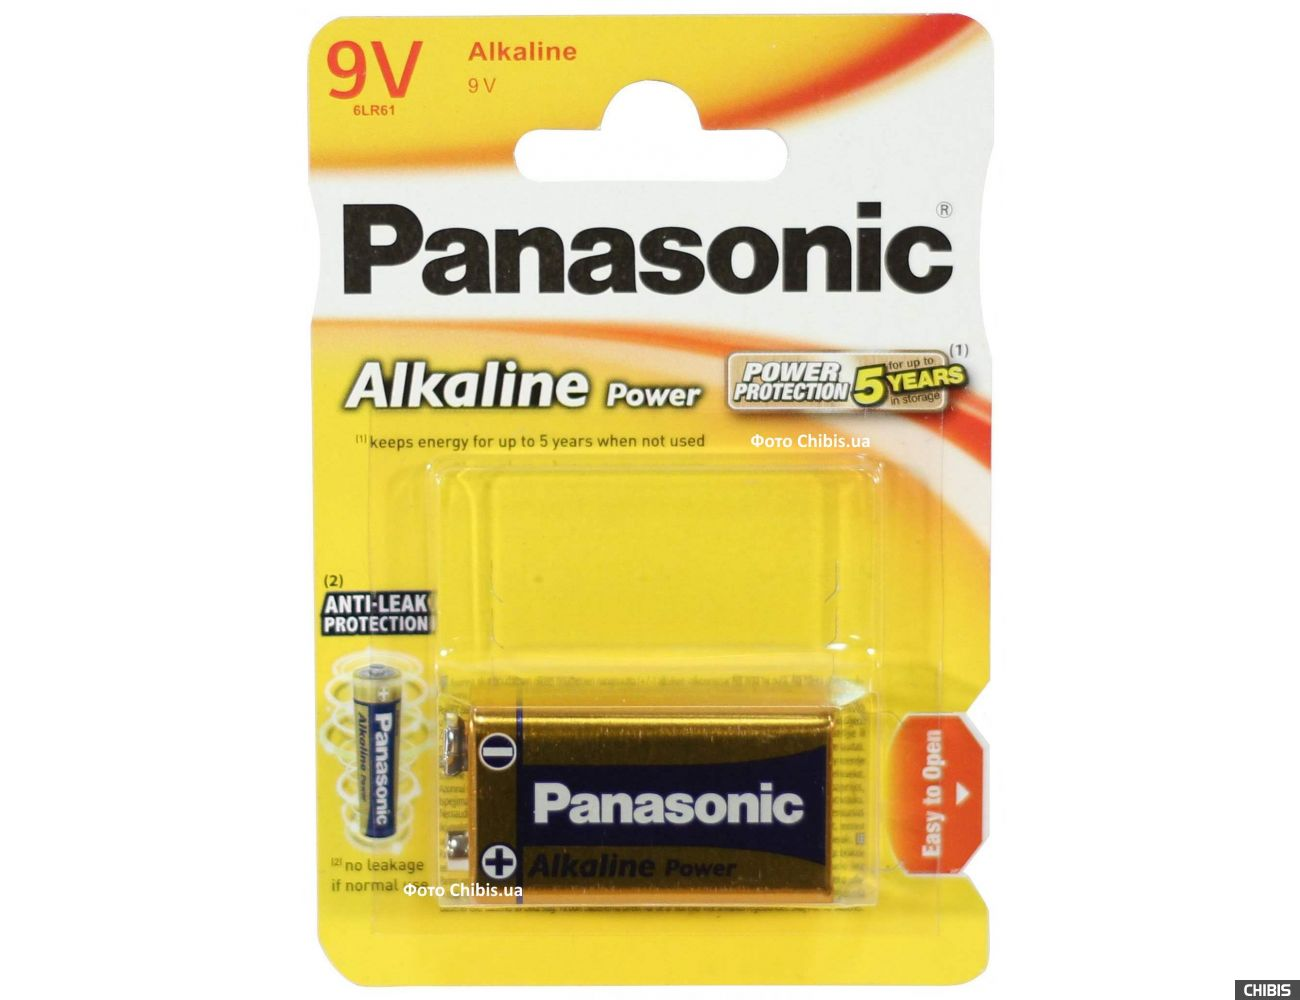 Батарейка Крона Panasonic 6LR61 9V Alkaline Power 9V 1 шт.